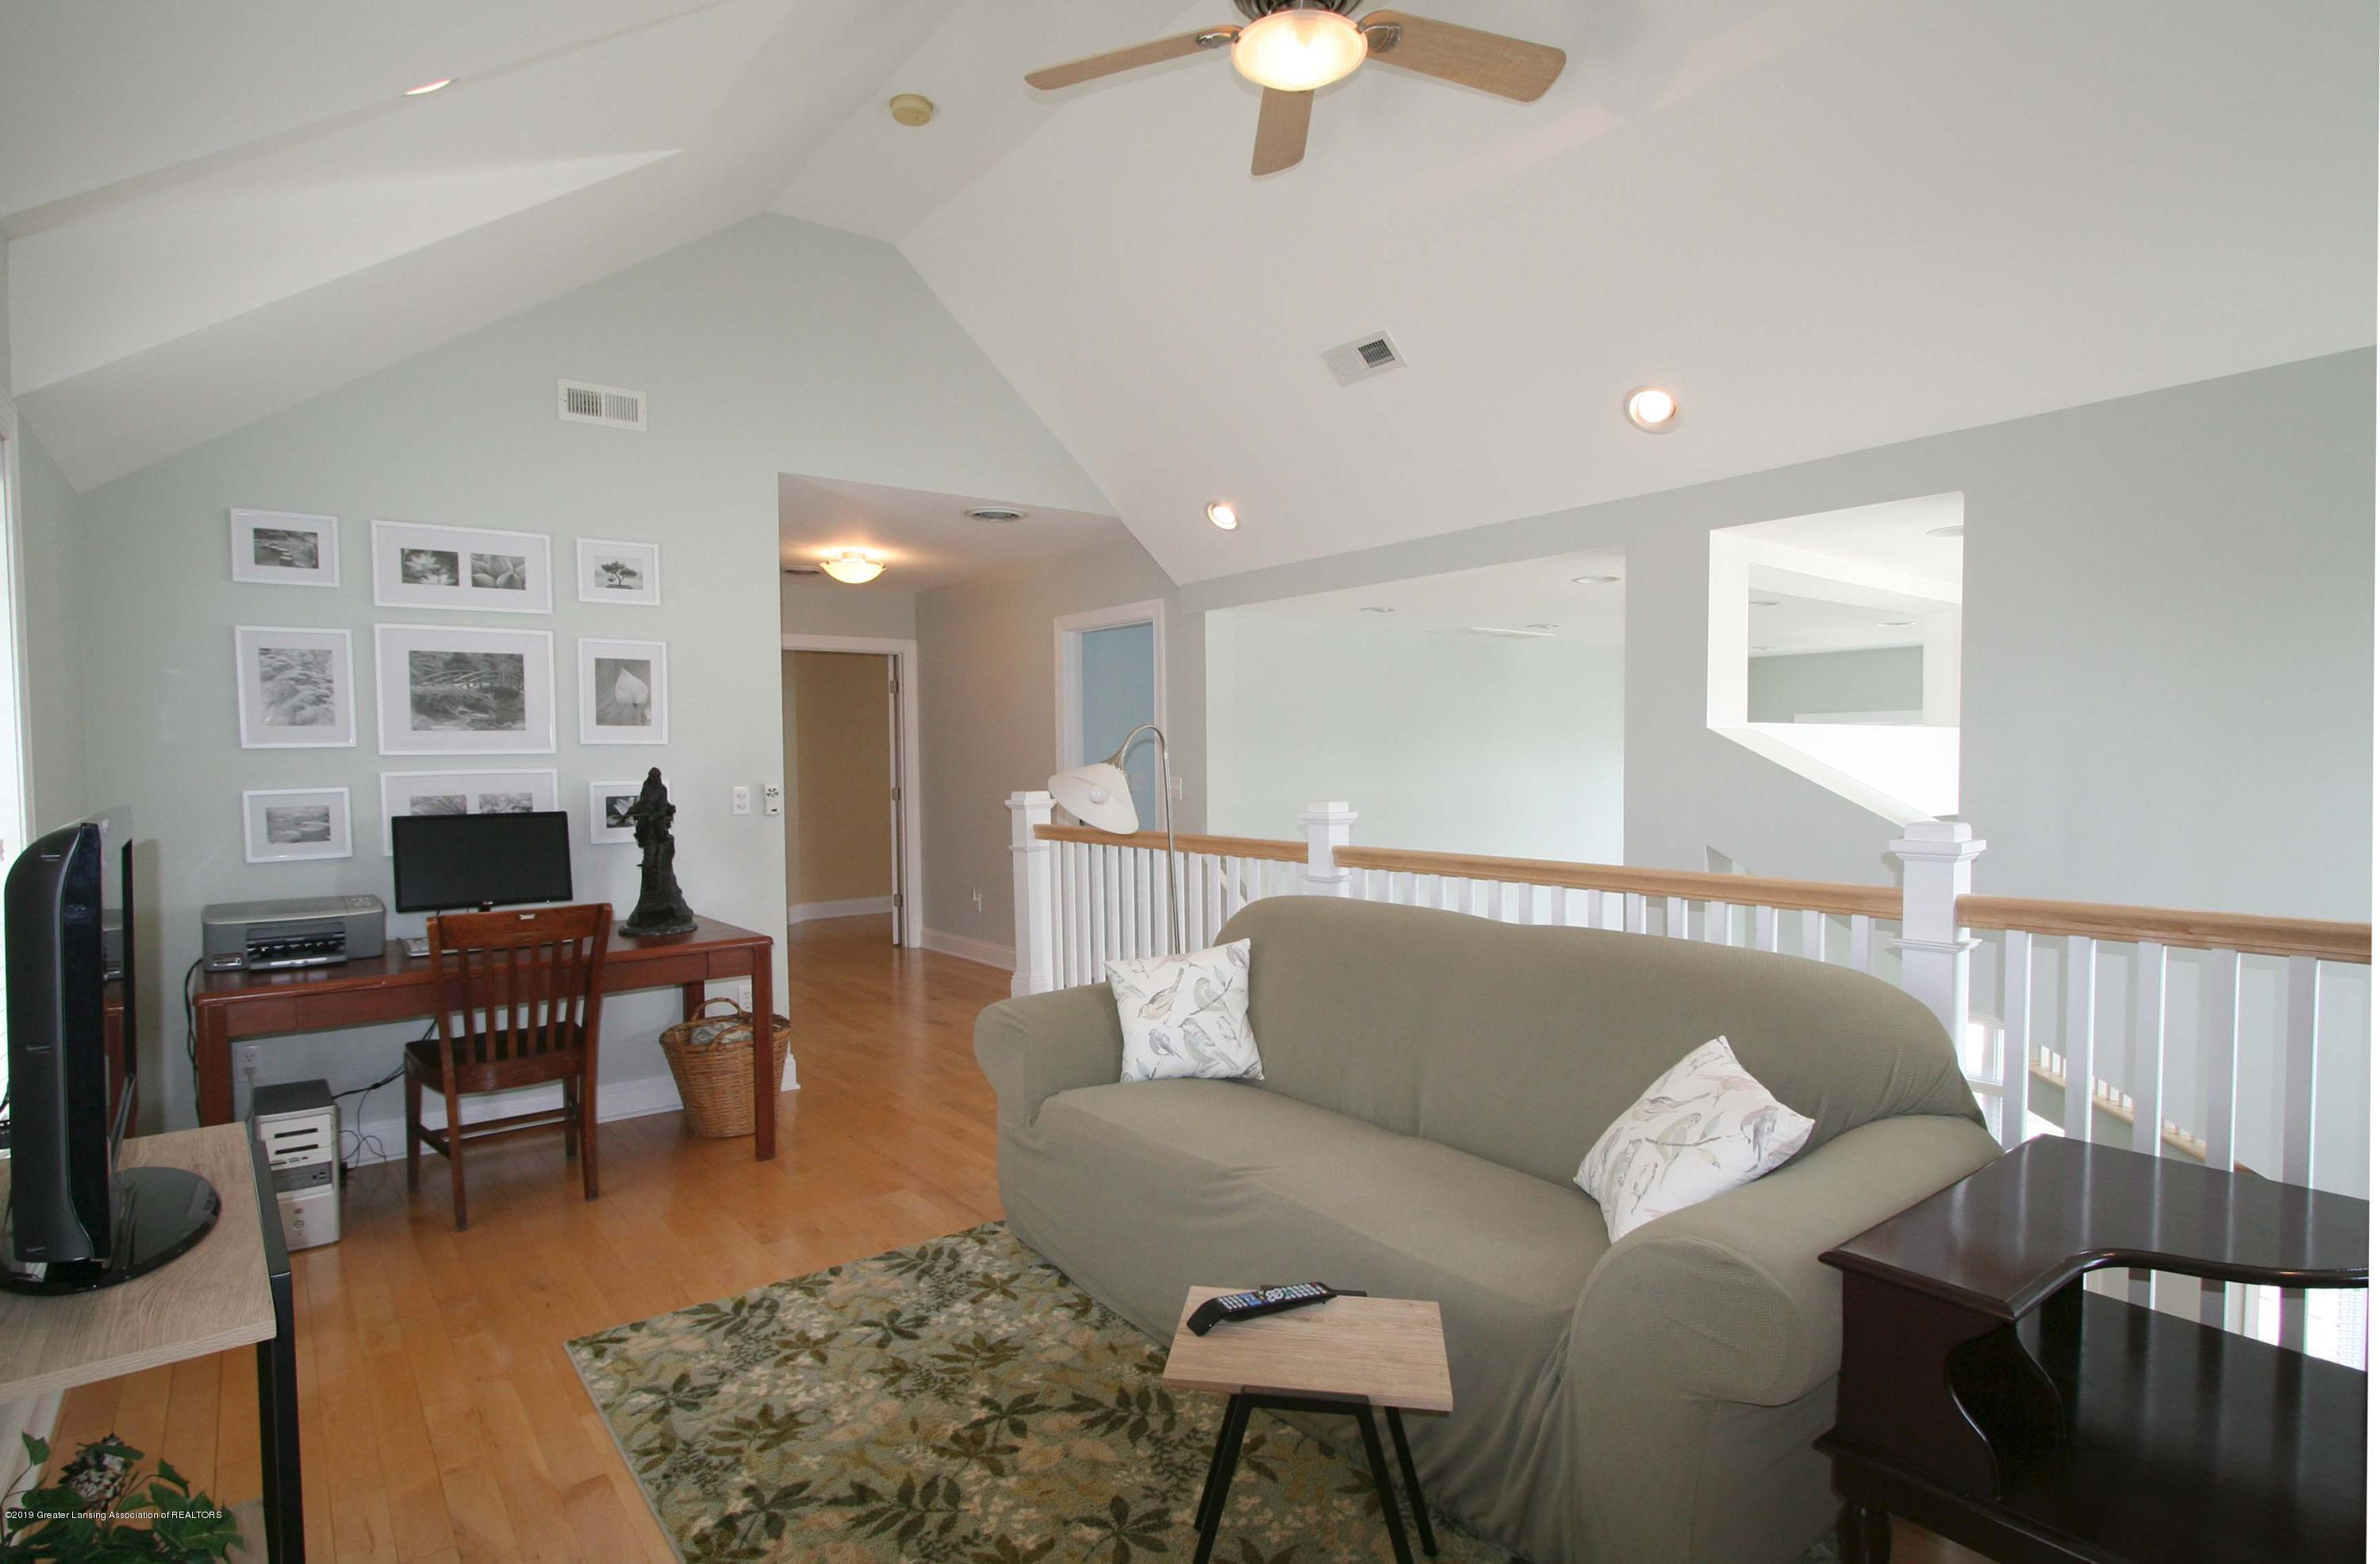 4271 Anderson Rd - 028 - 28